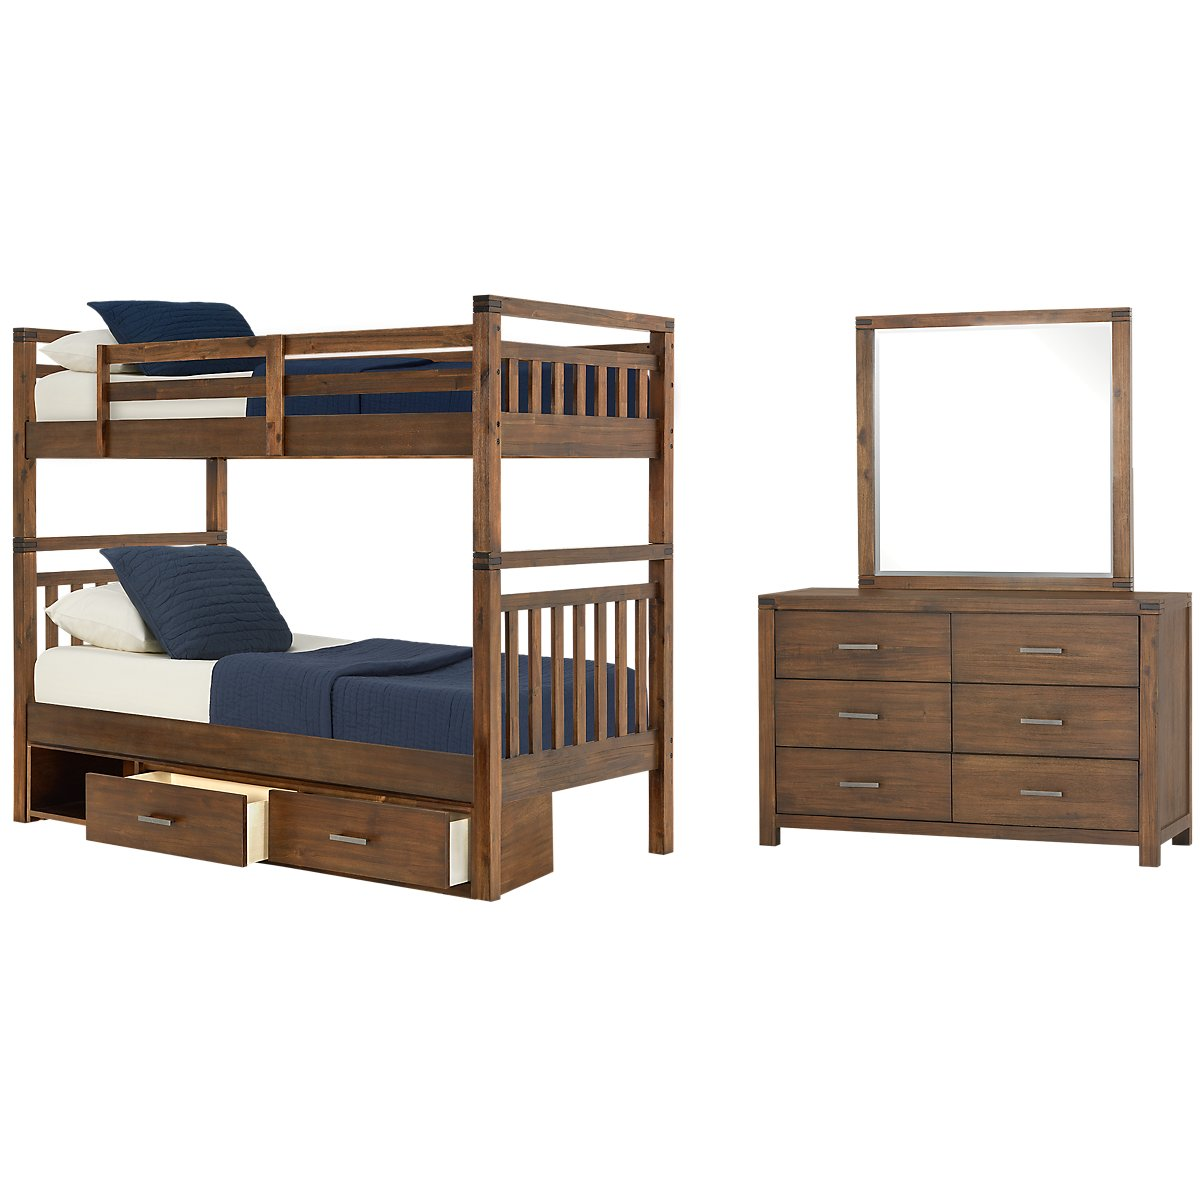 Jake Dark Tone Wood Bunk Bed Storage Bedroom